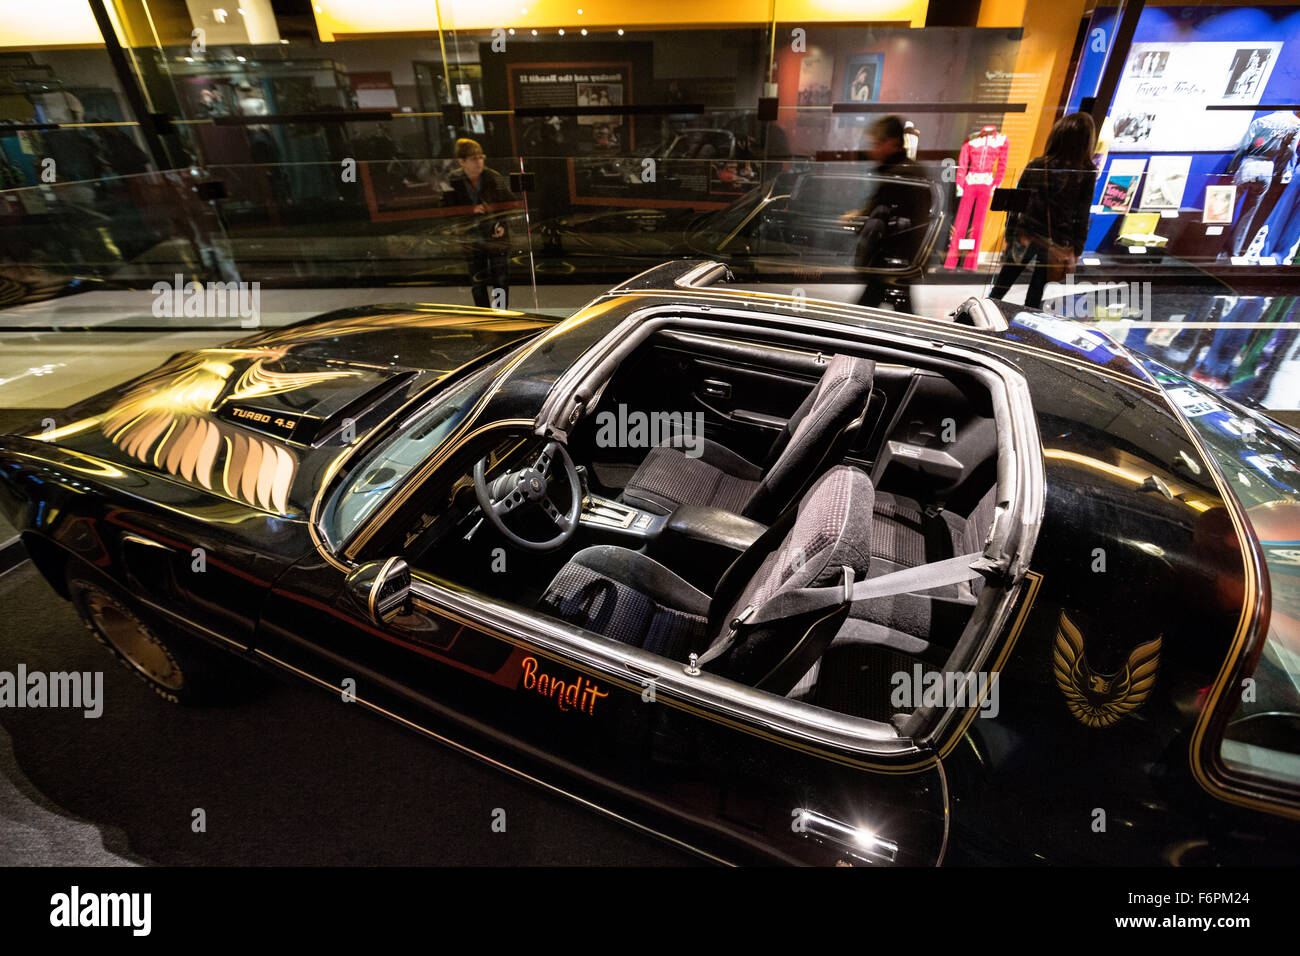 Pontiac Trans Am Owned By Burt Reynolds From The Movie